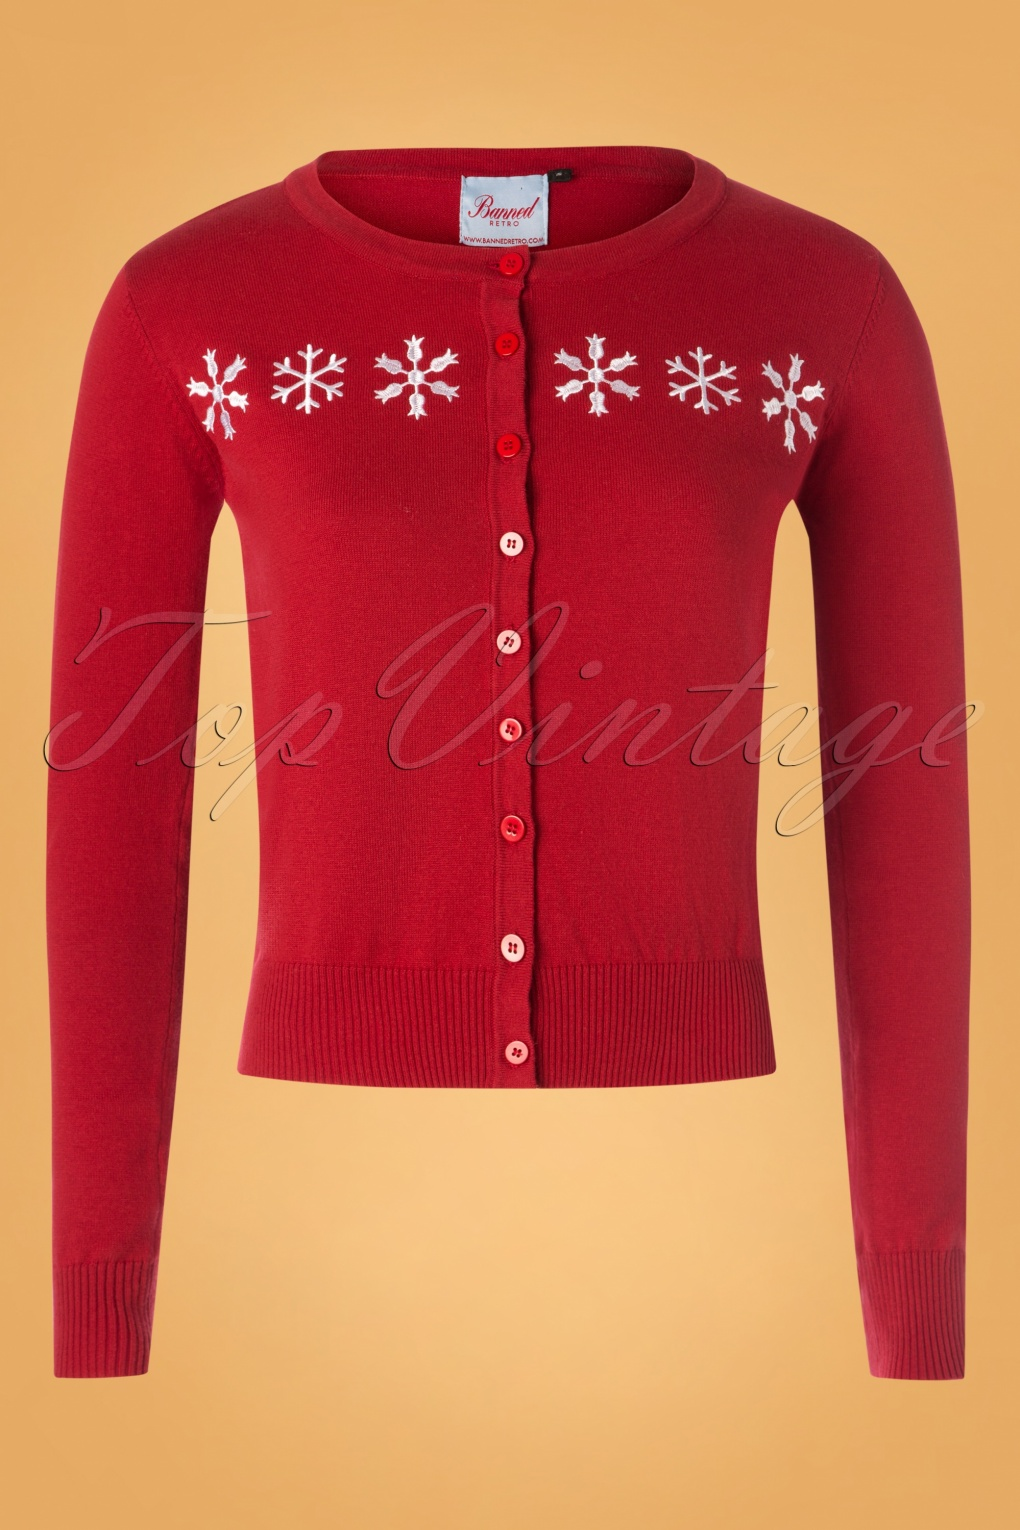 1950s Sweaters, 50s Cardigans, 50s Jumpers 50s Snow Flake Cardigan in Dark Red £37.37 AT vintagedancer.com